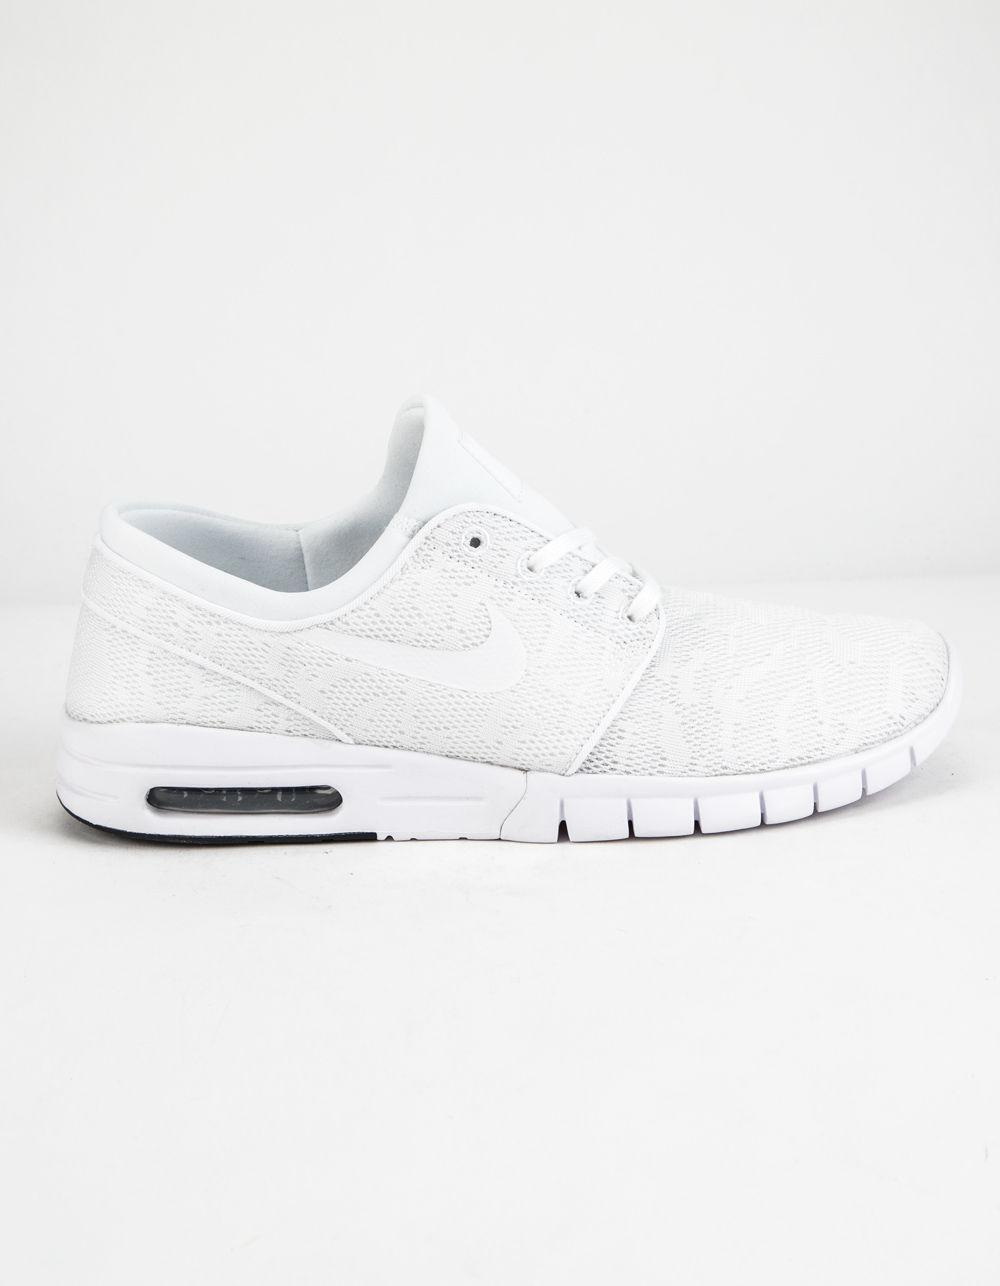 6fc8a1b20d43 Lyst - Nike Sb Stefan Janoski Max Shoes in White for Men - Save 4%